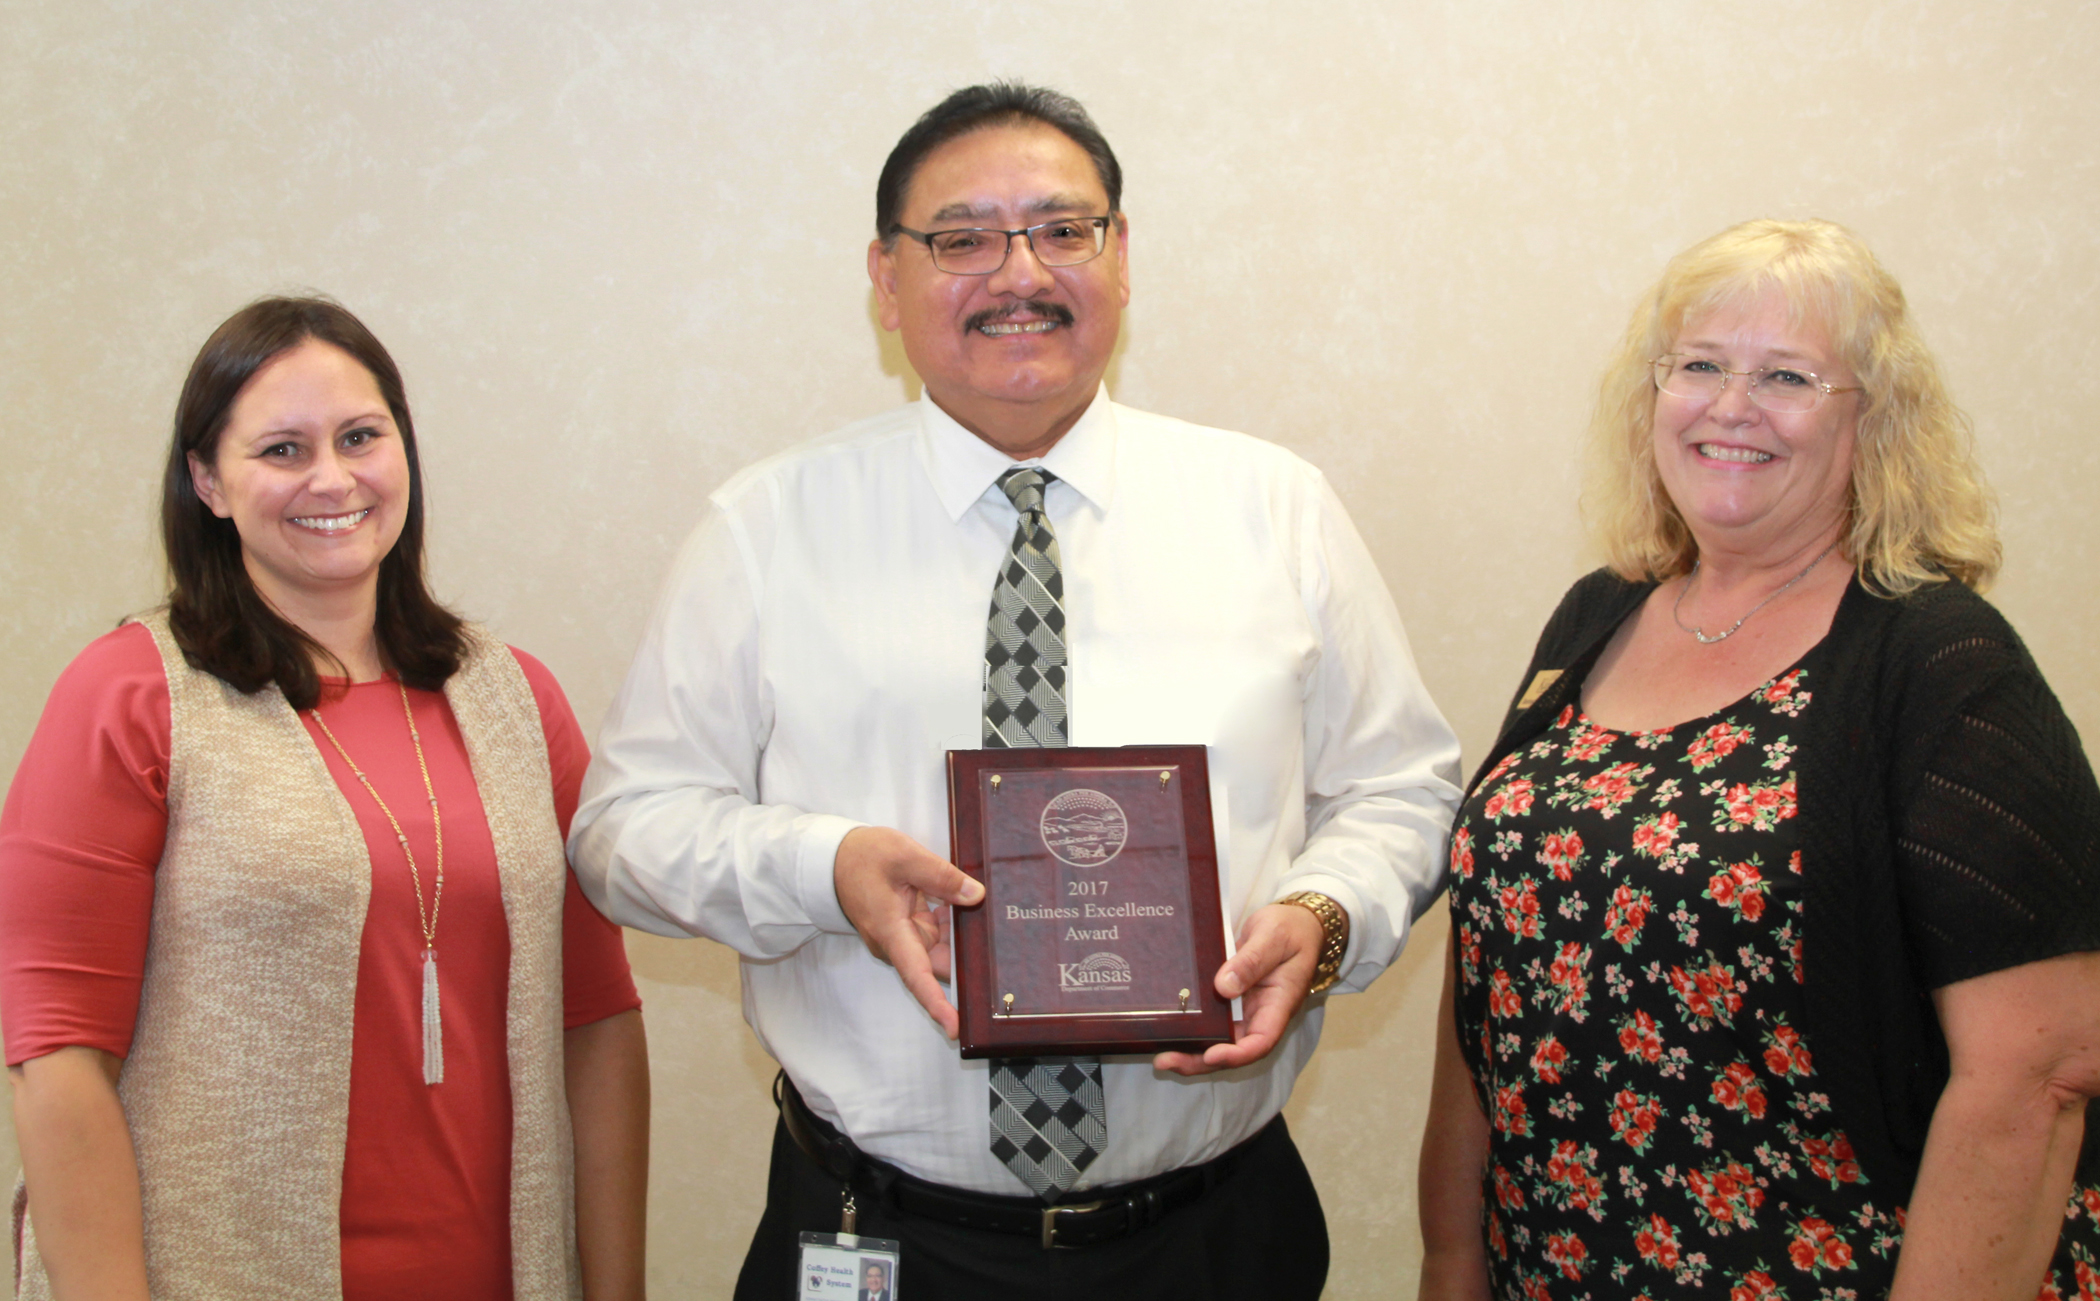 Kansas Department of Commerce recognizes CHS as regional award winner